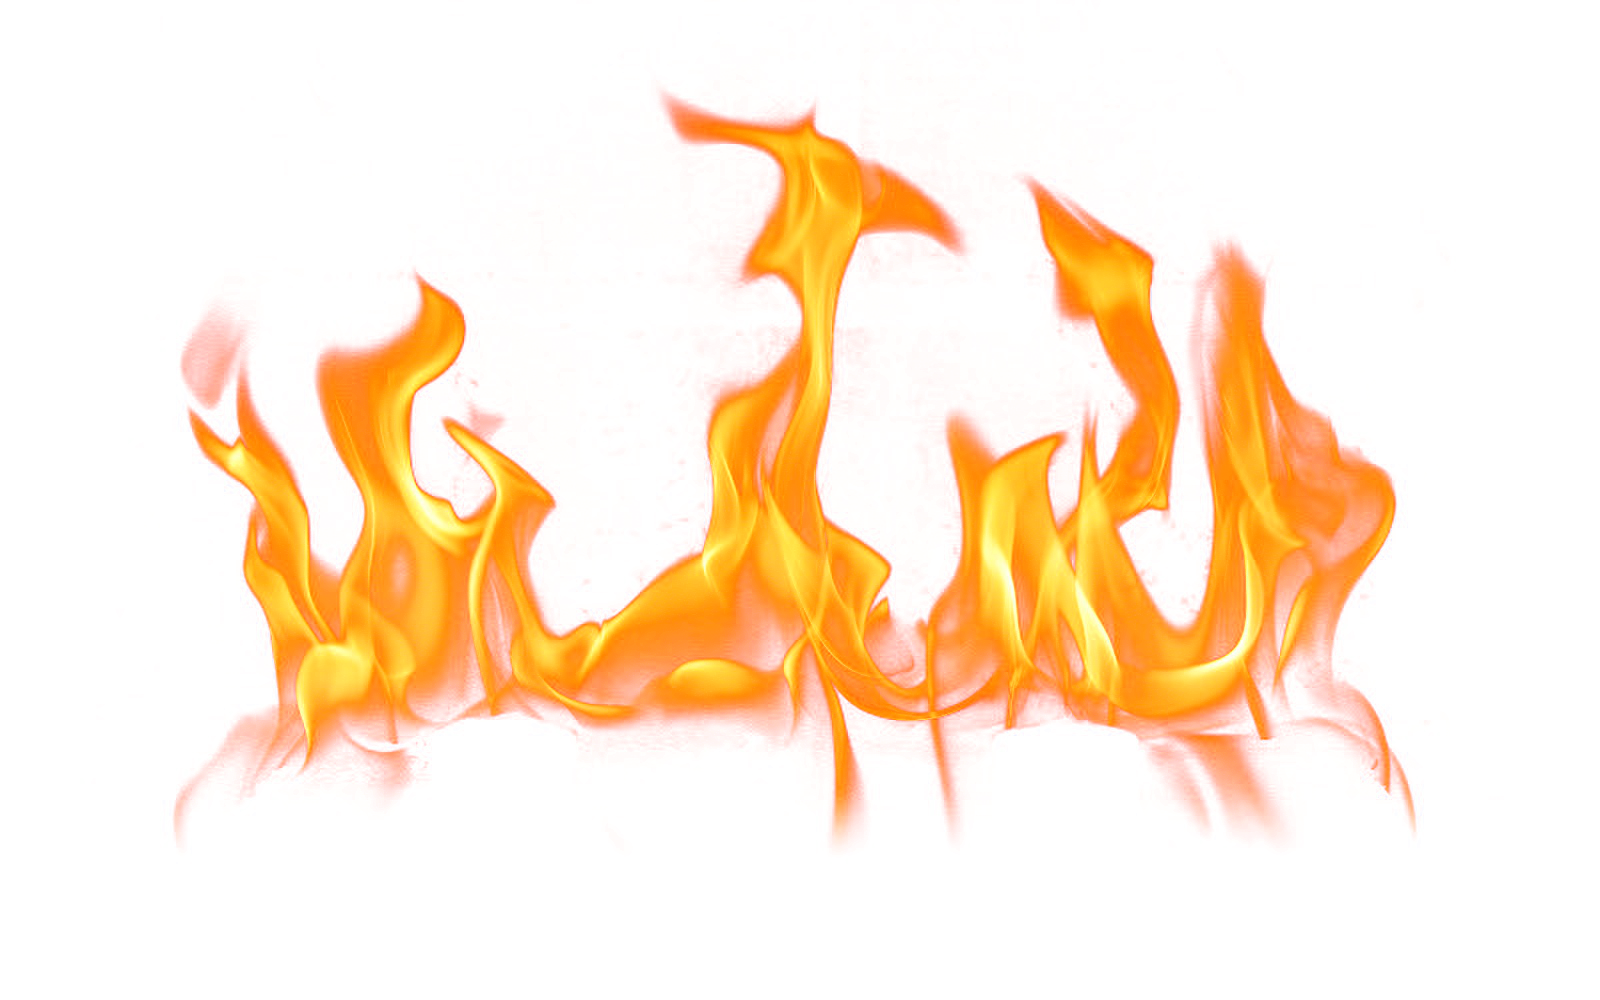 Bbq fire png. Flame images free download